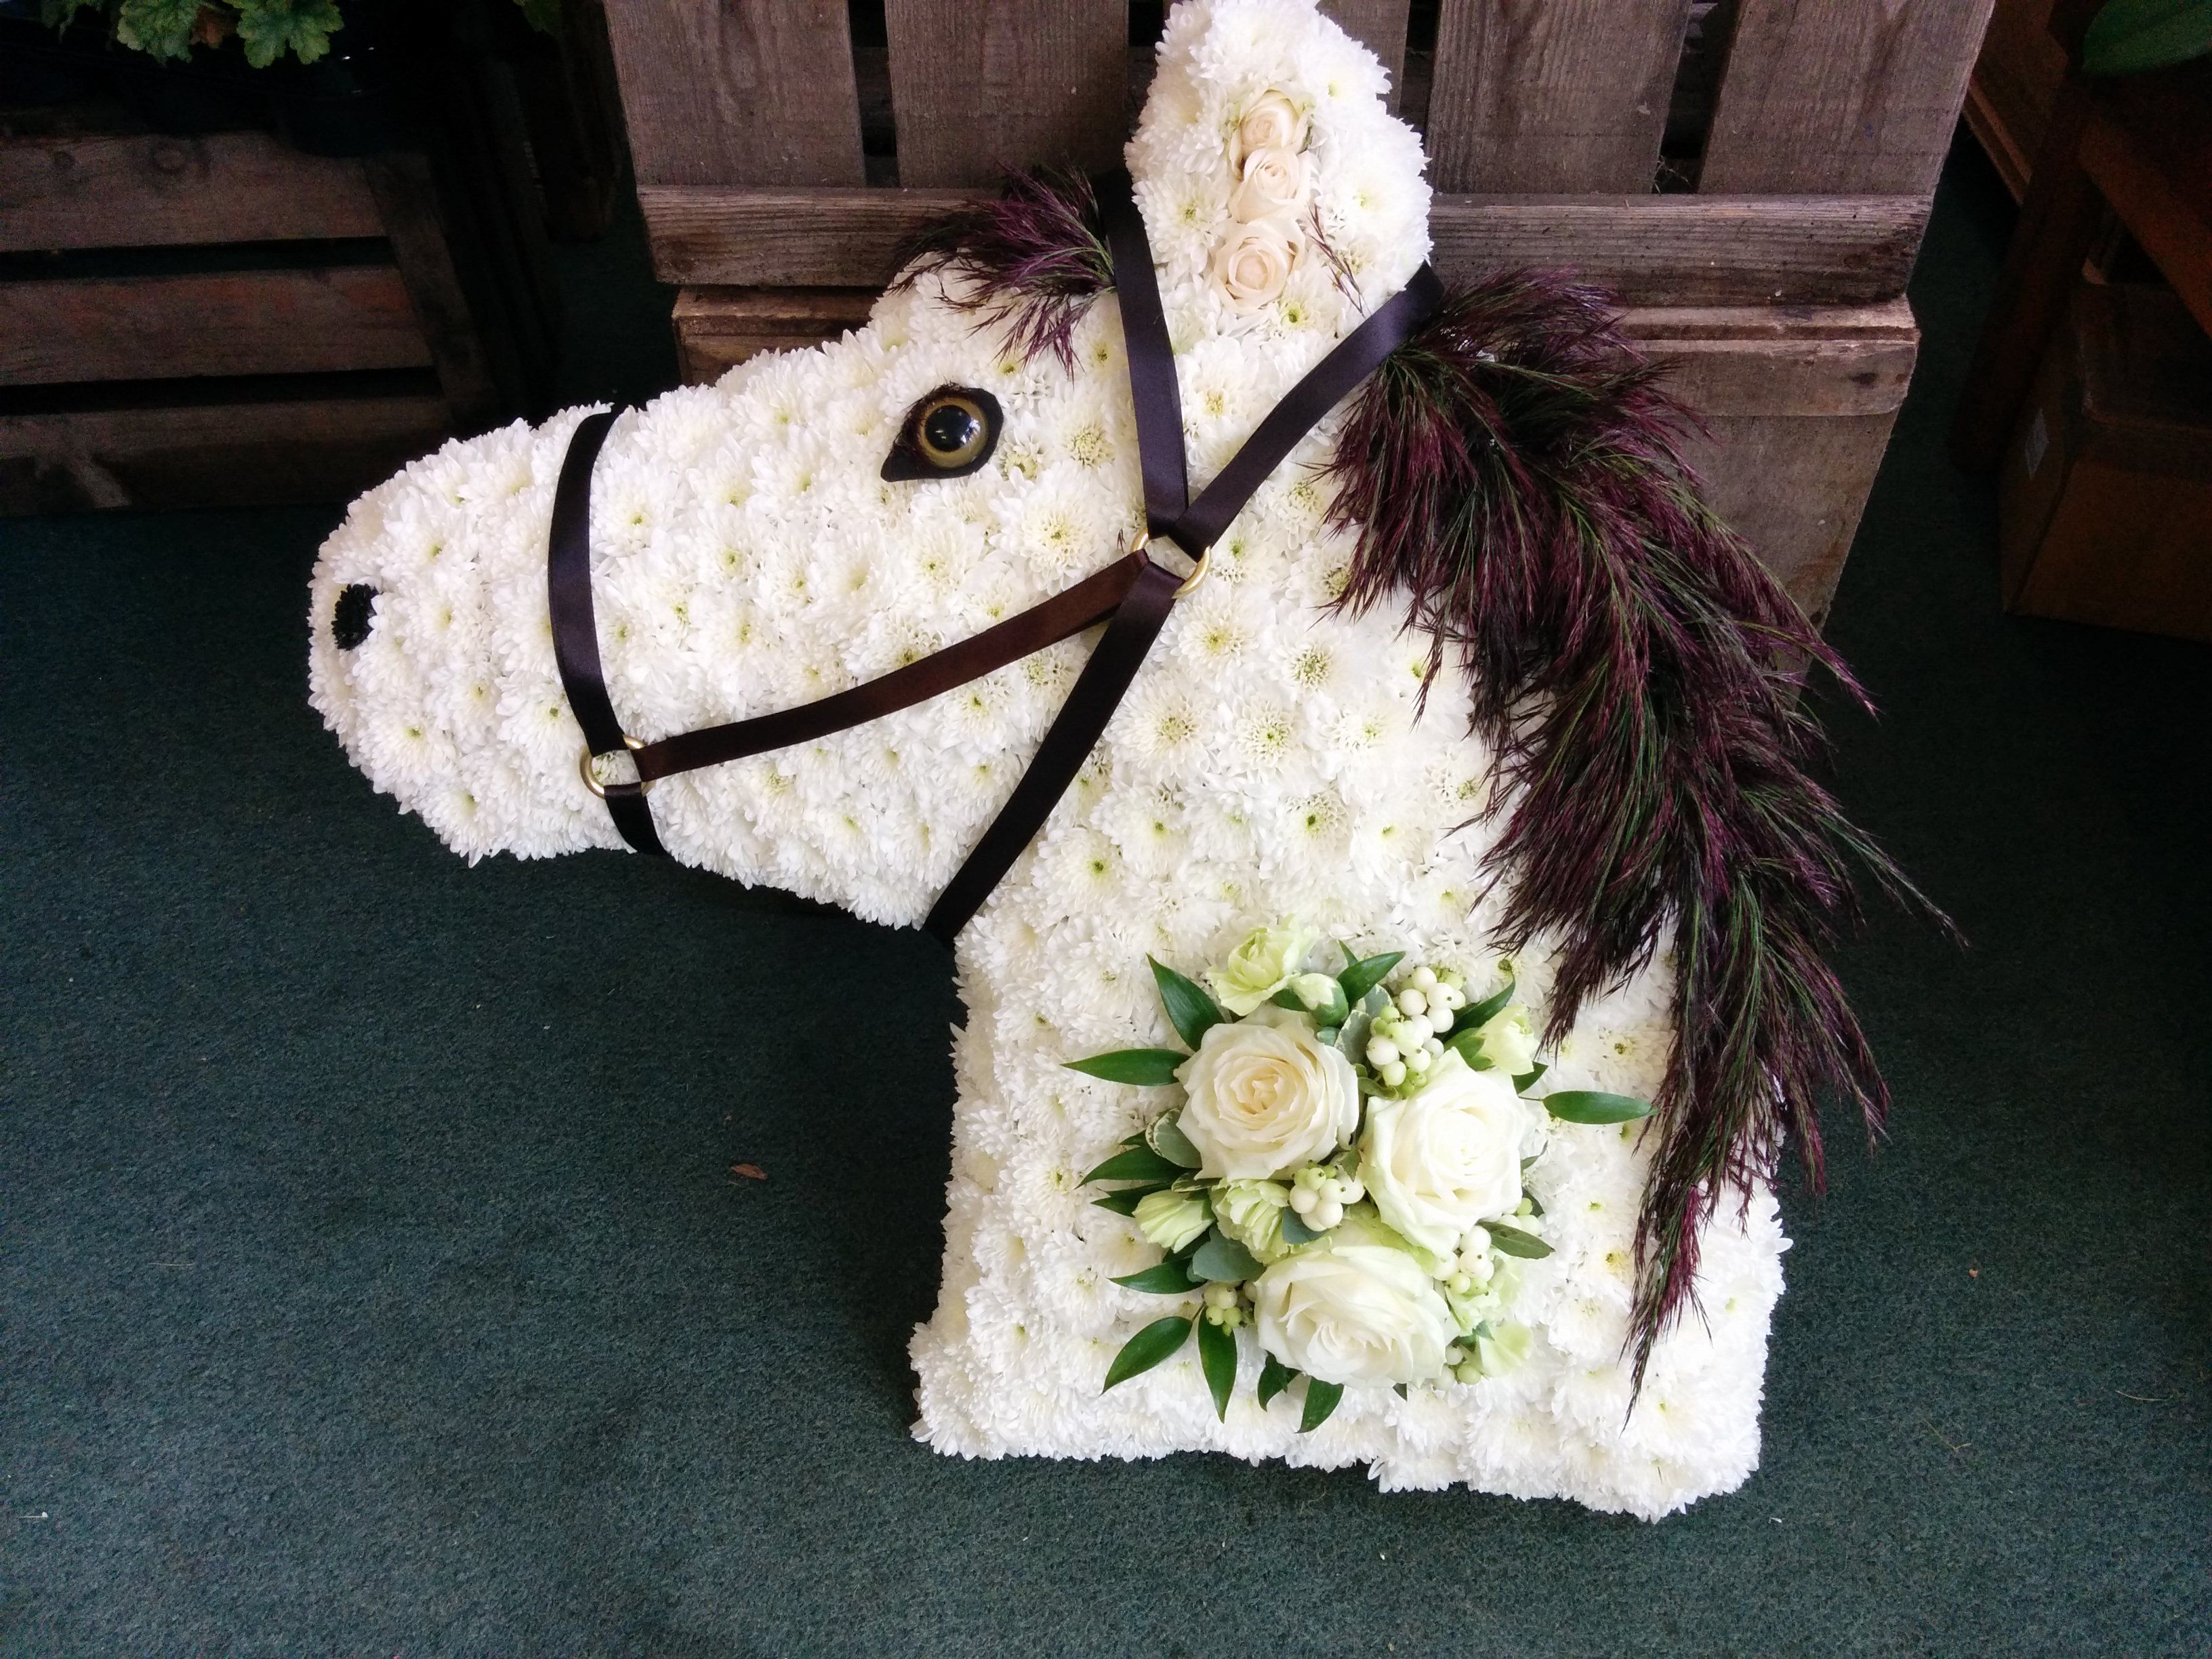 Our White Horse With His Dark Brown Mane Is A Wonderful Tribute For